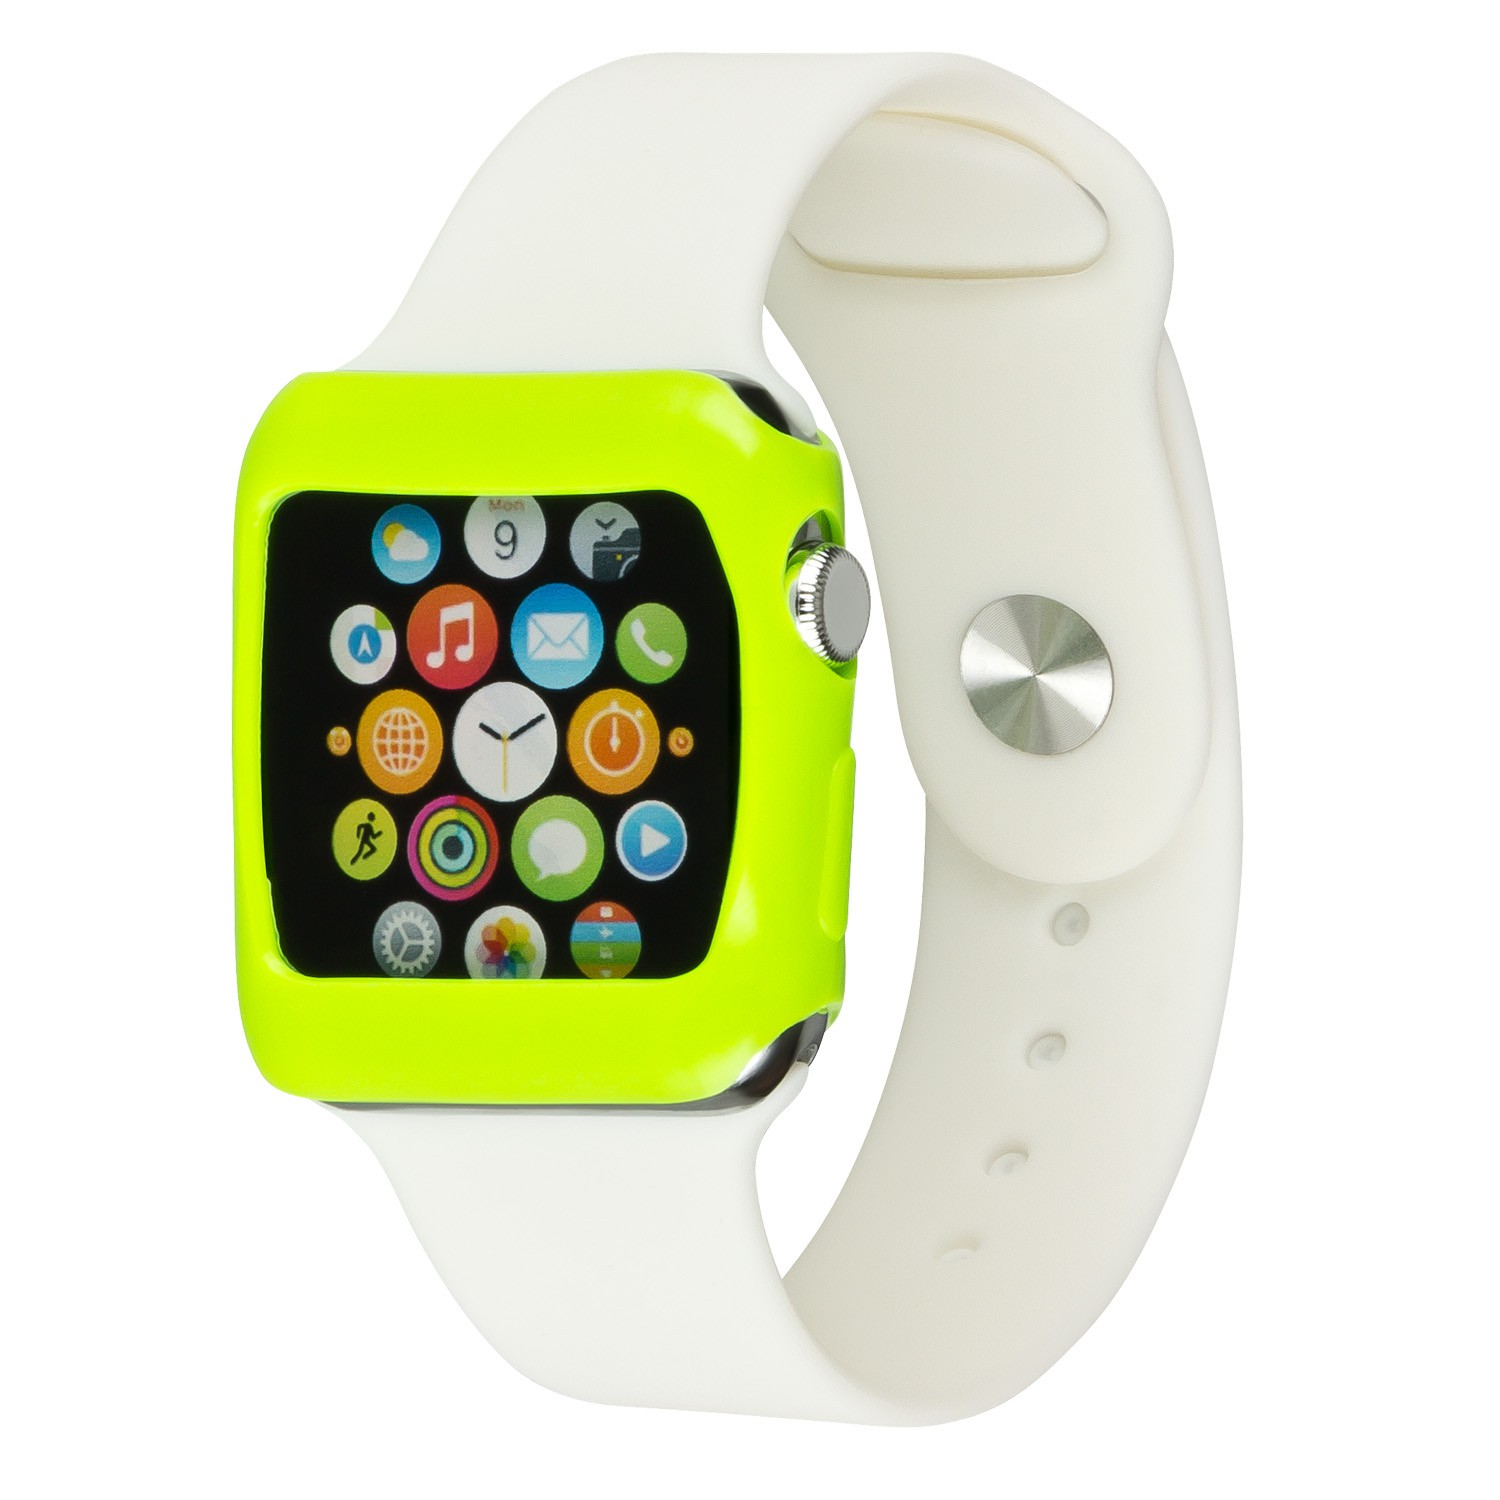 Yemota Pro Slimcase Apple Watch 38mm - Grün